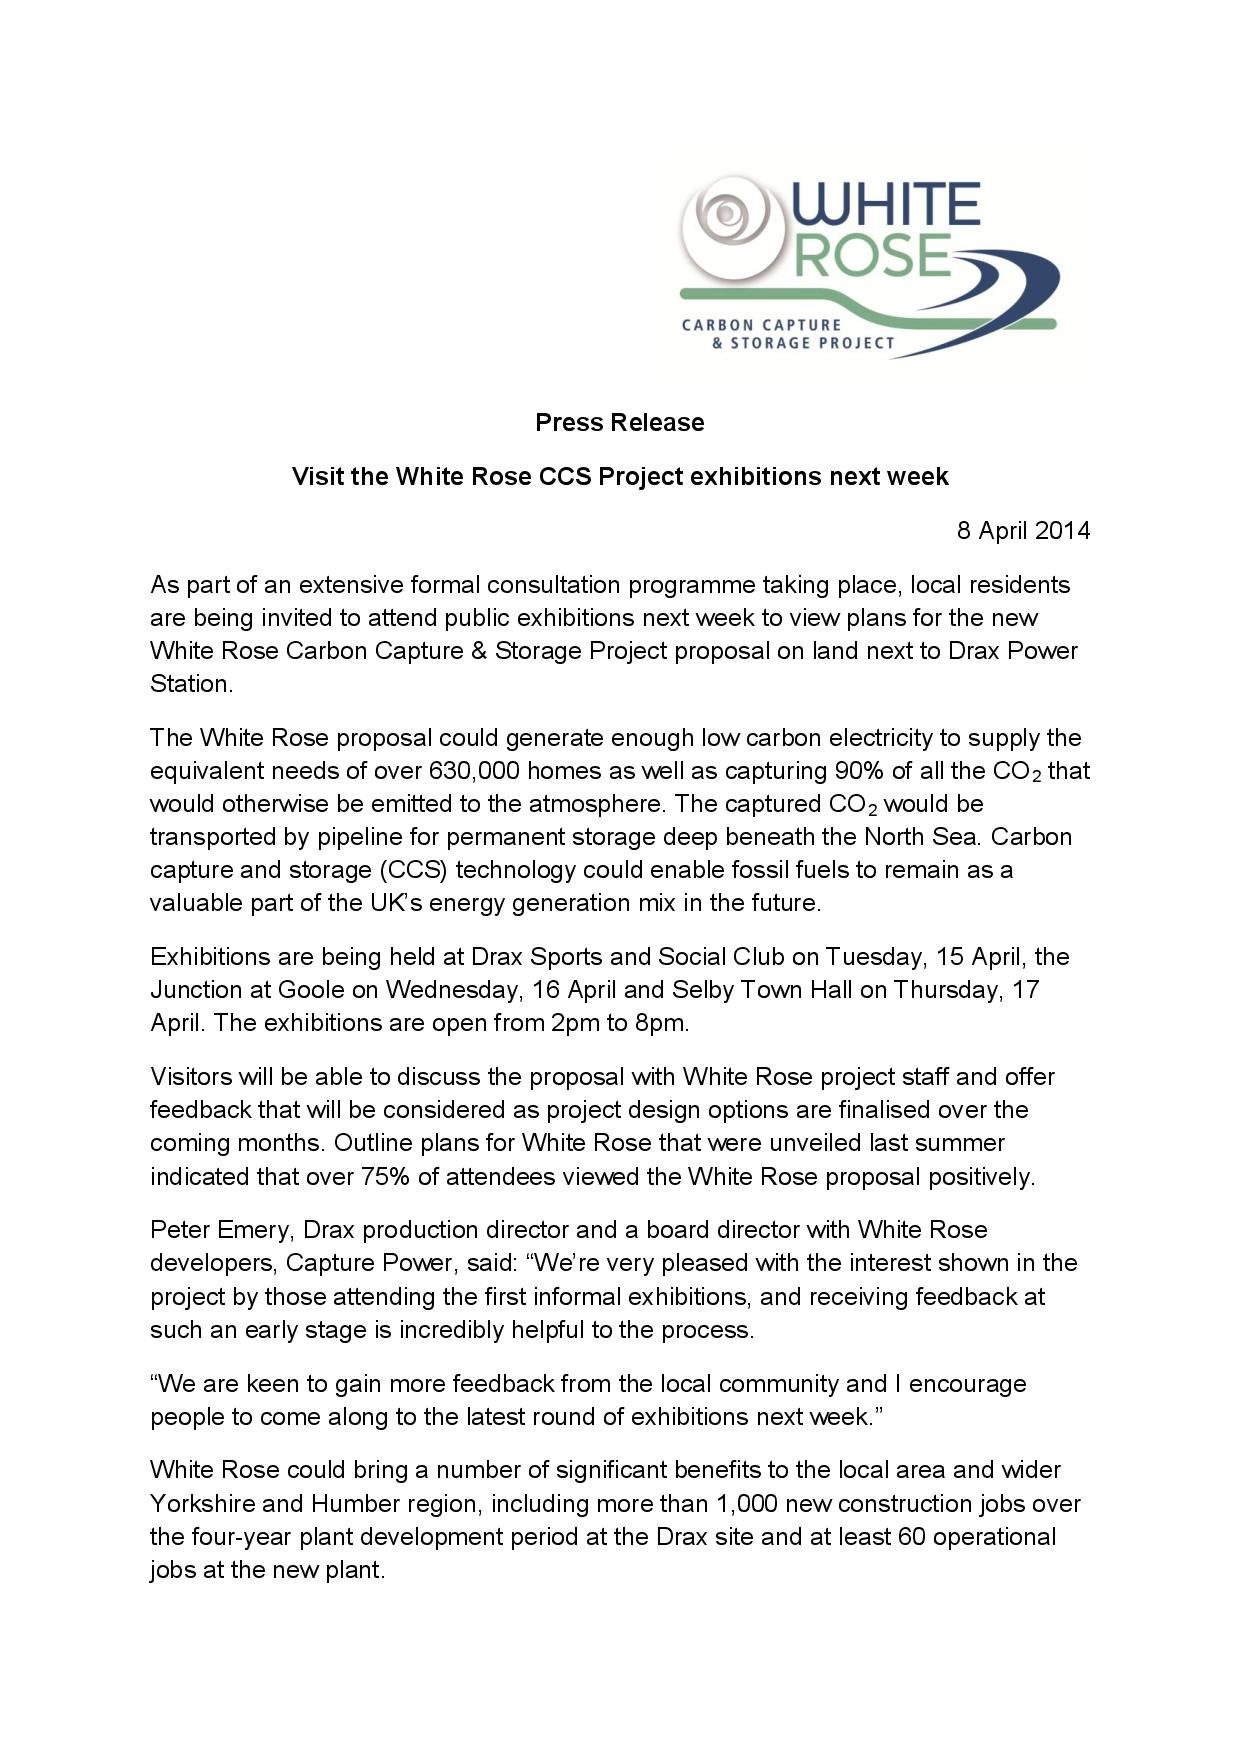 White Rose CCS Project press release - Visit the White Rose CCS Project exhibitions next week (1)-page-001.jpg